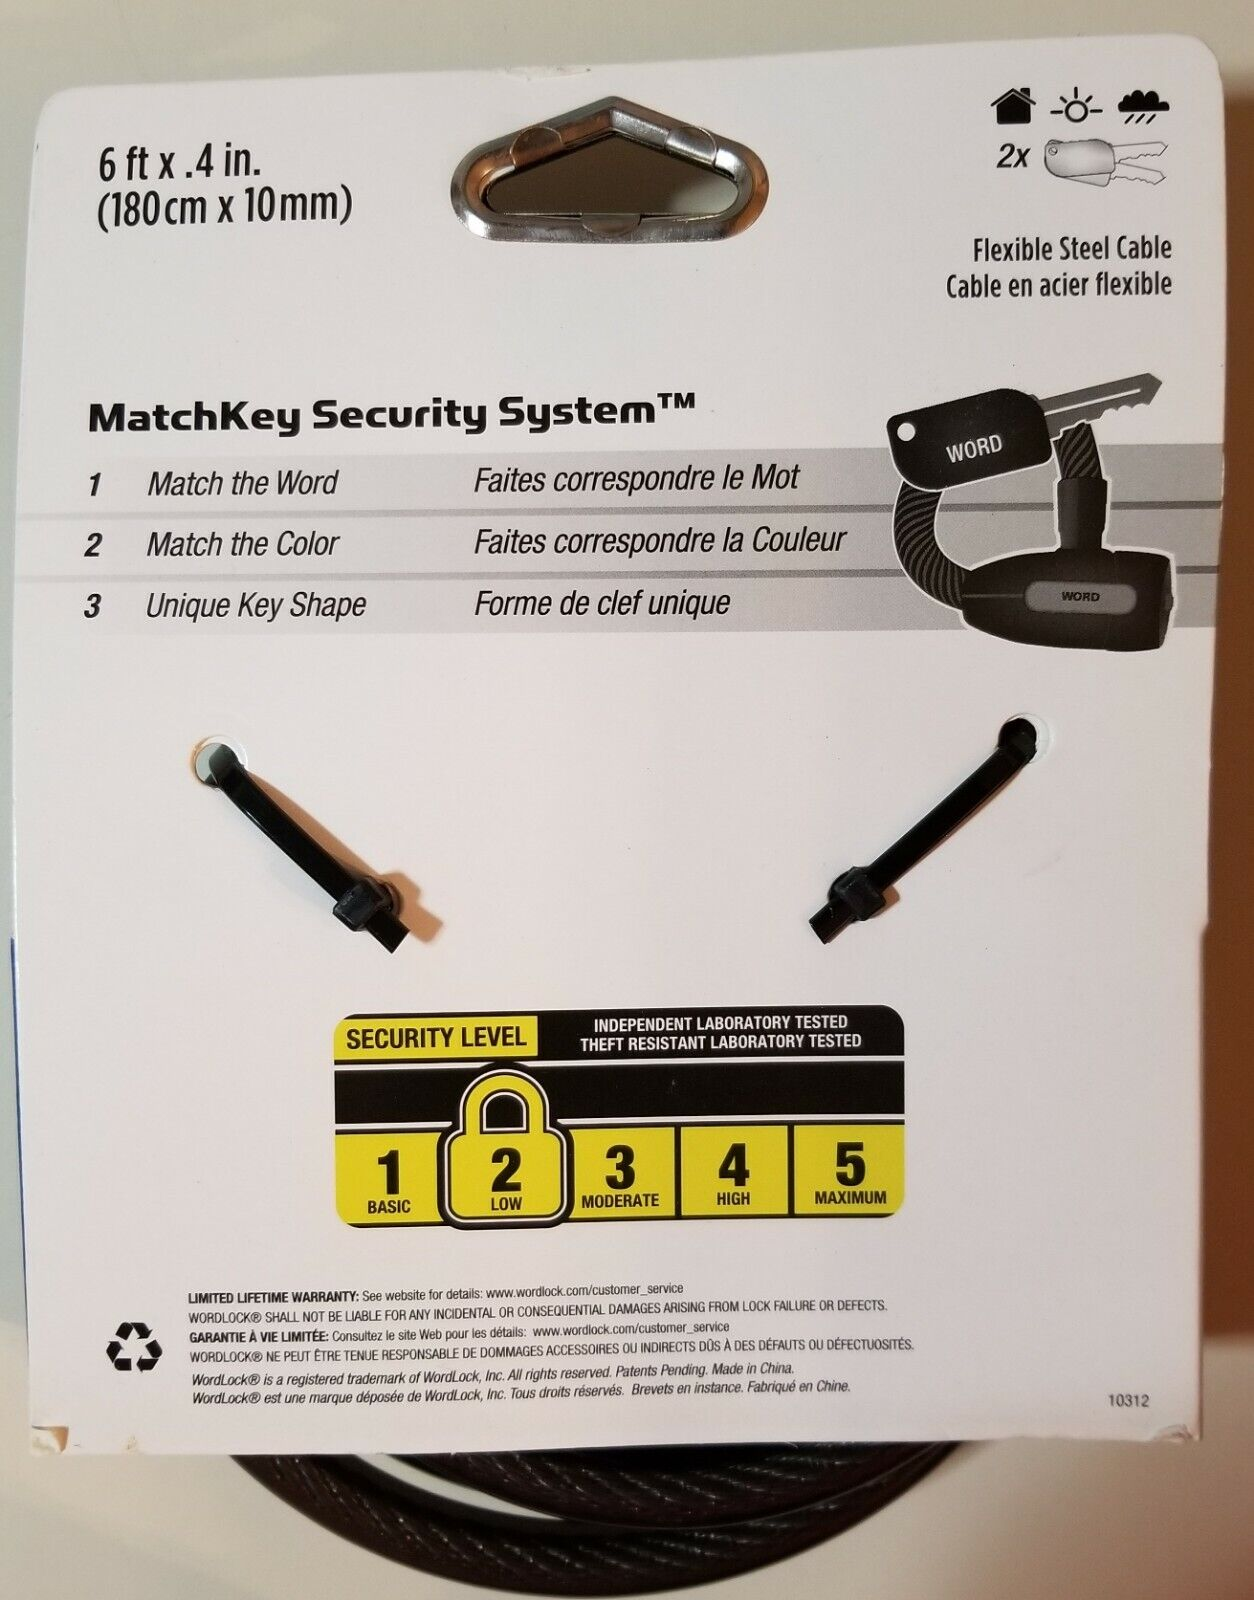 WordLock MatchKey Security Matching Key and Cable CL-617-BK Black